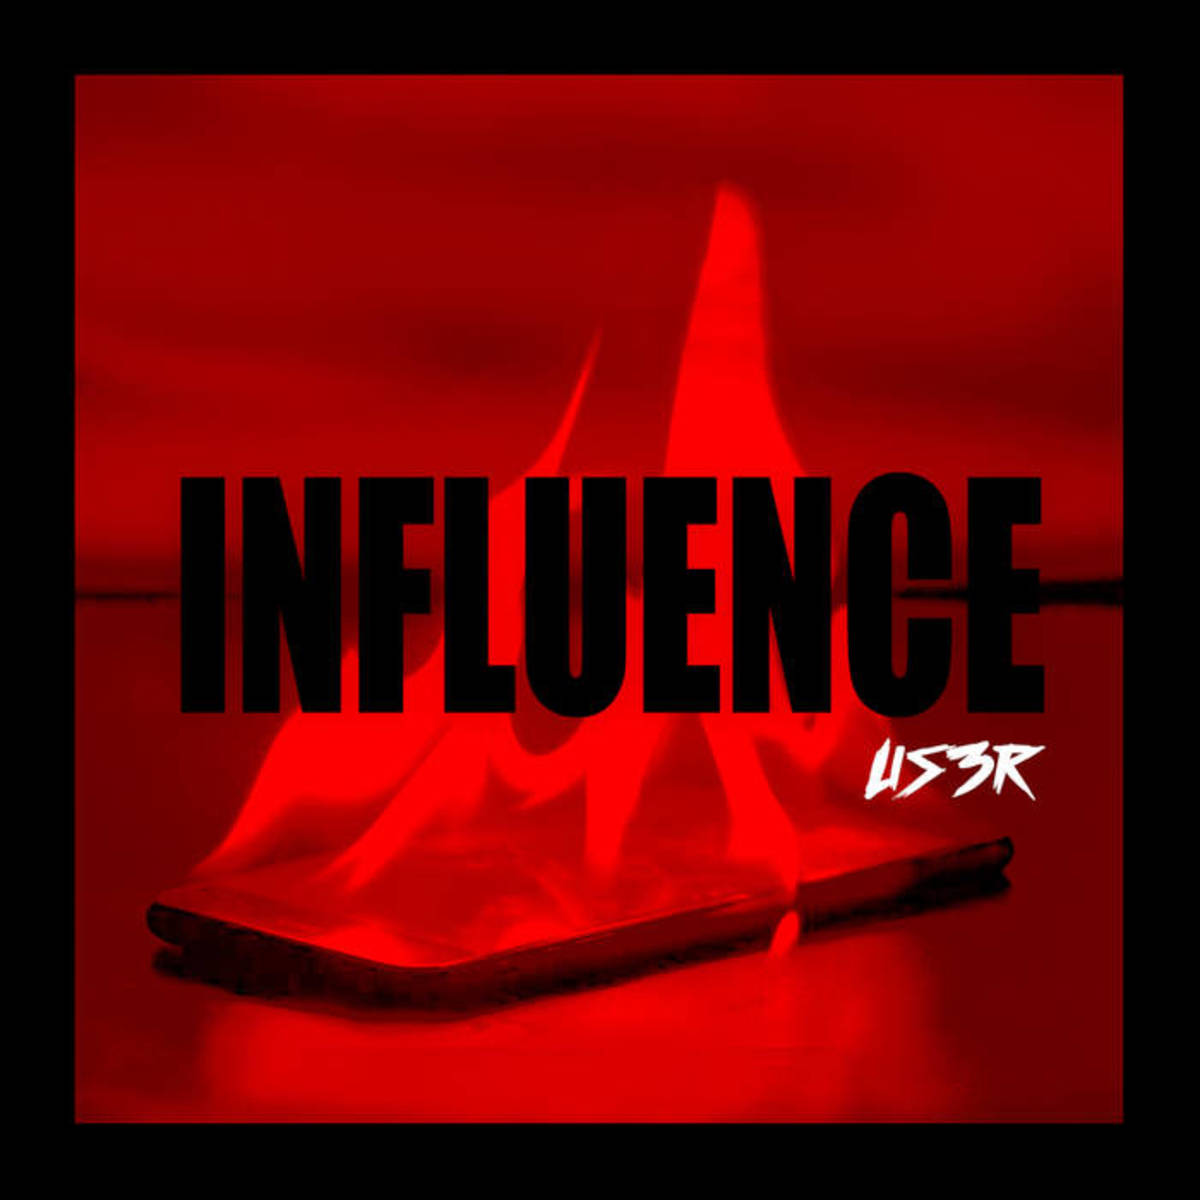 """Synth Album Review: US3r, """"Influence"""""""